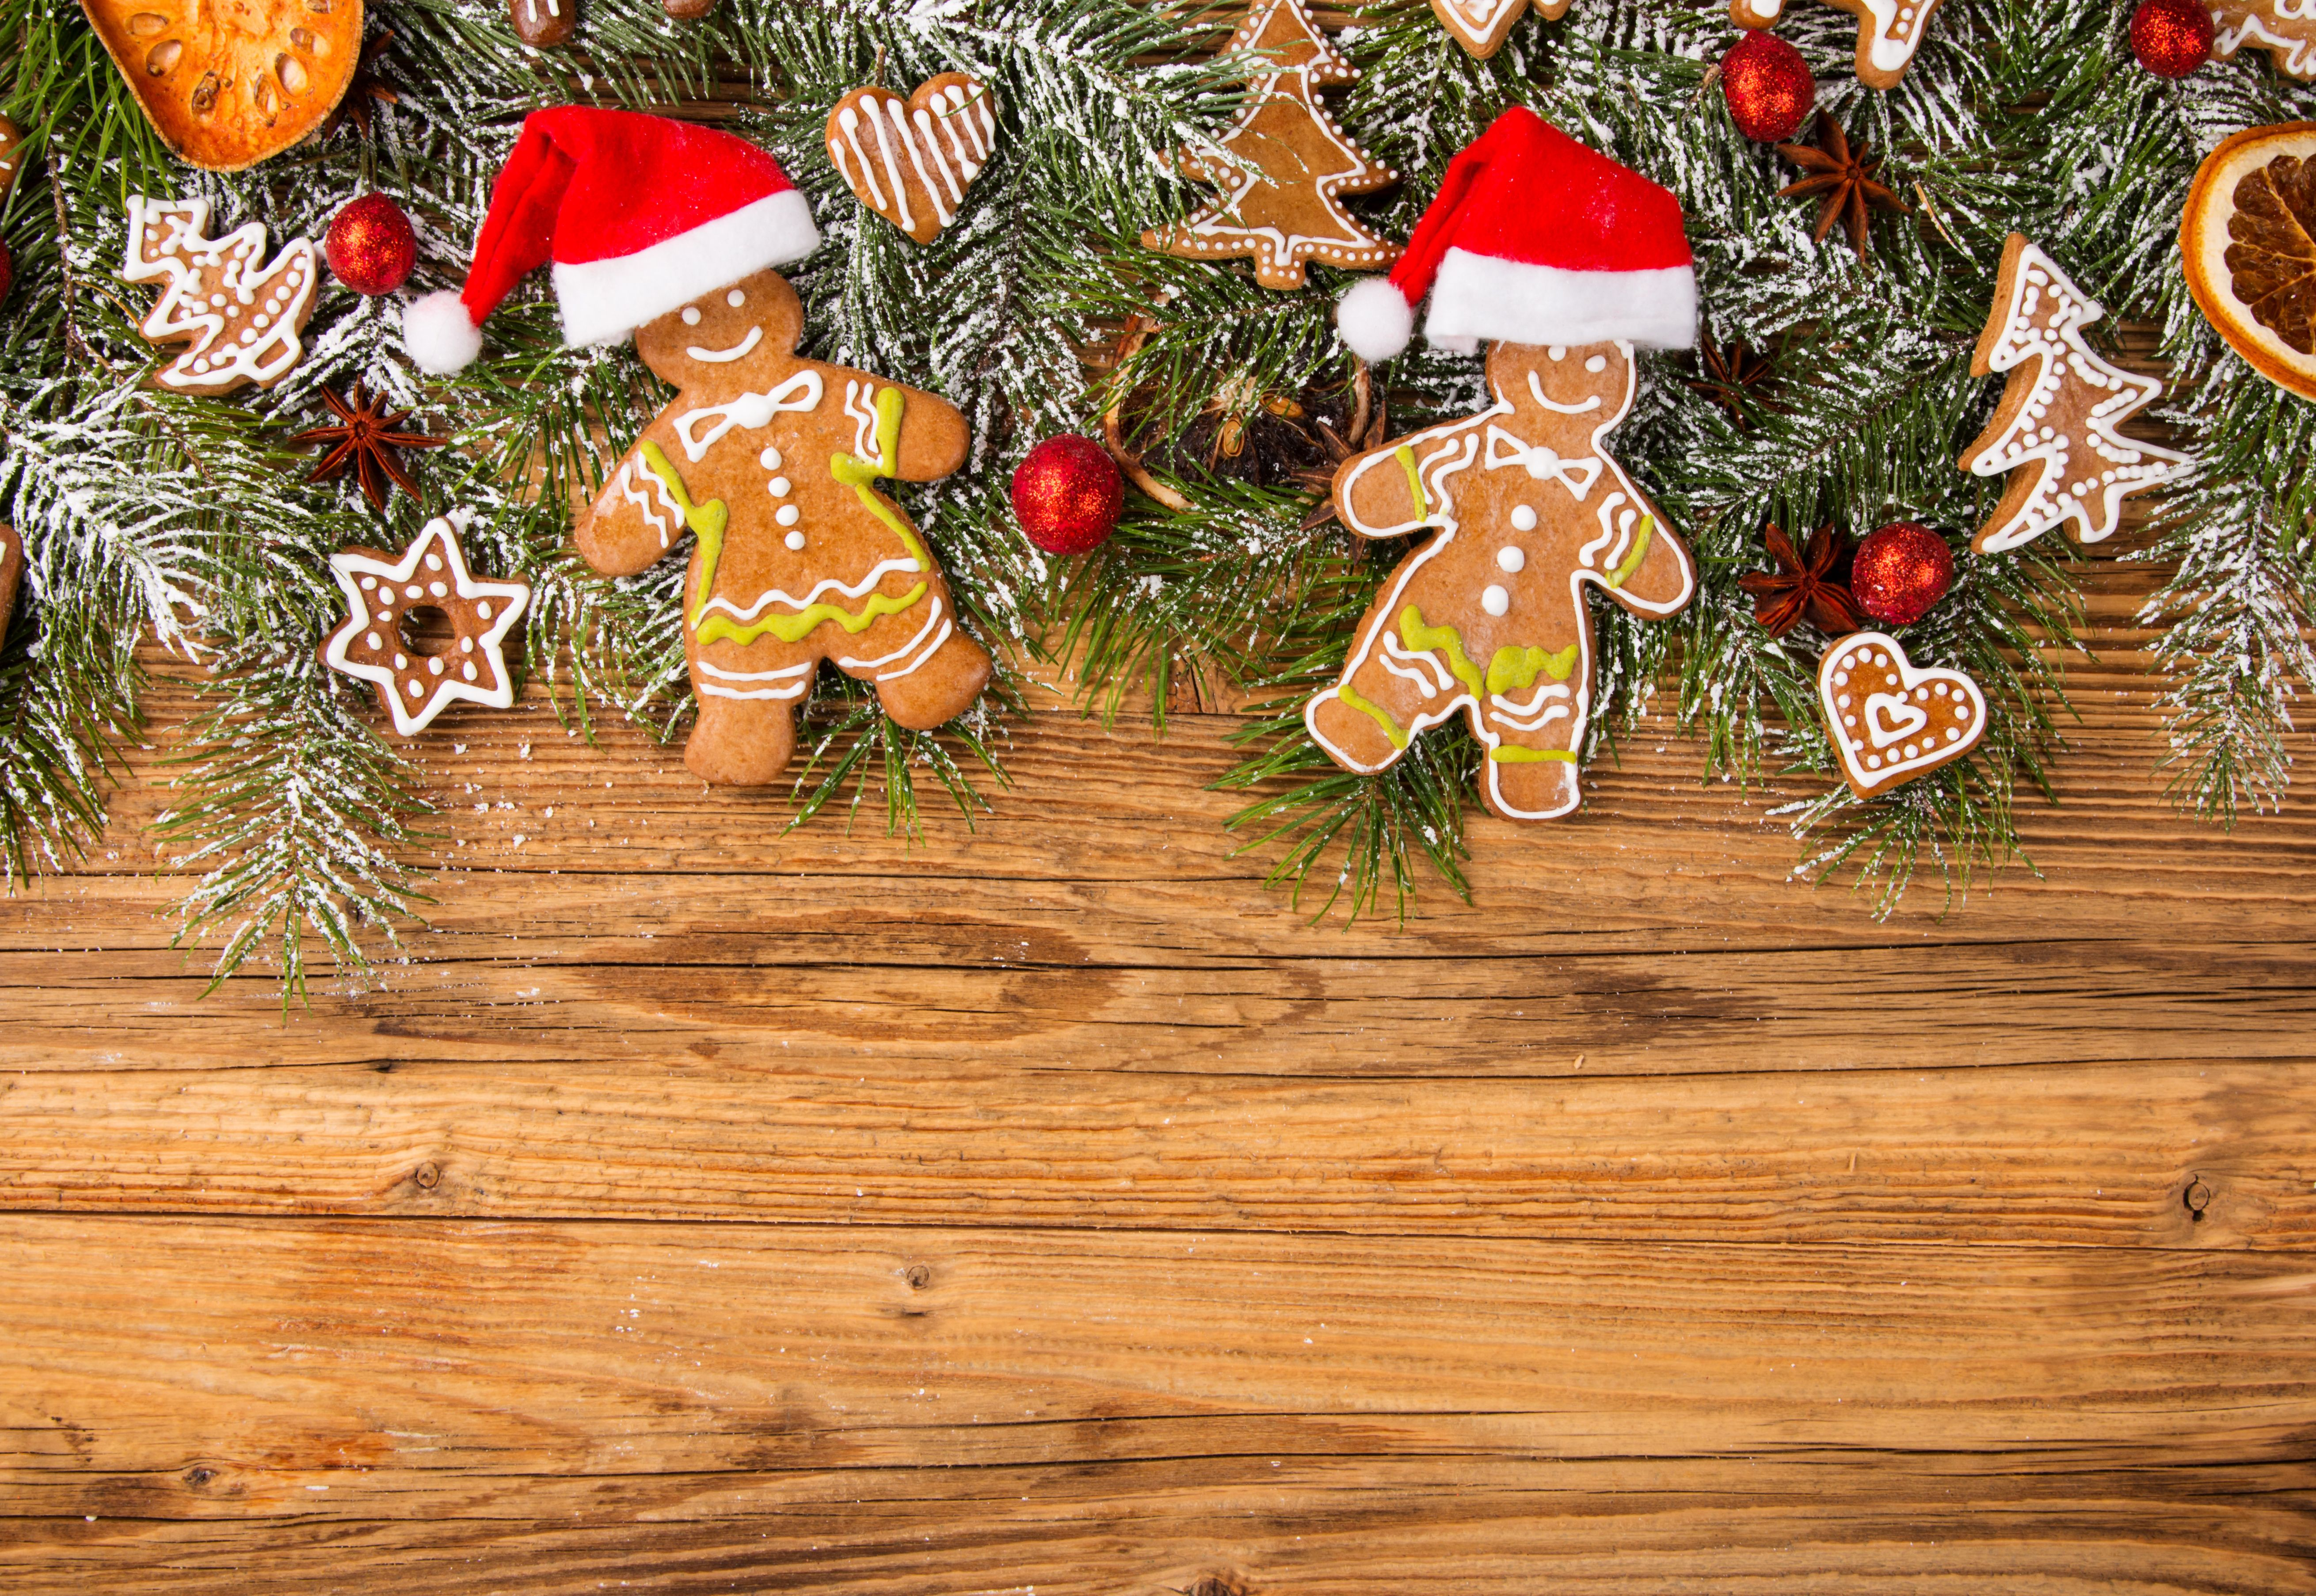 Download Christmas Food Wallpaper Gallery 5240x3611